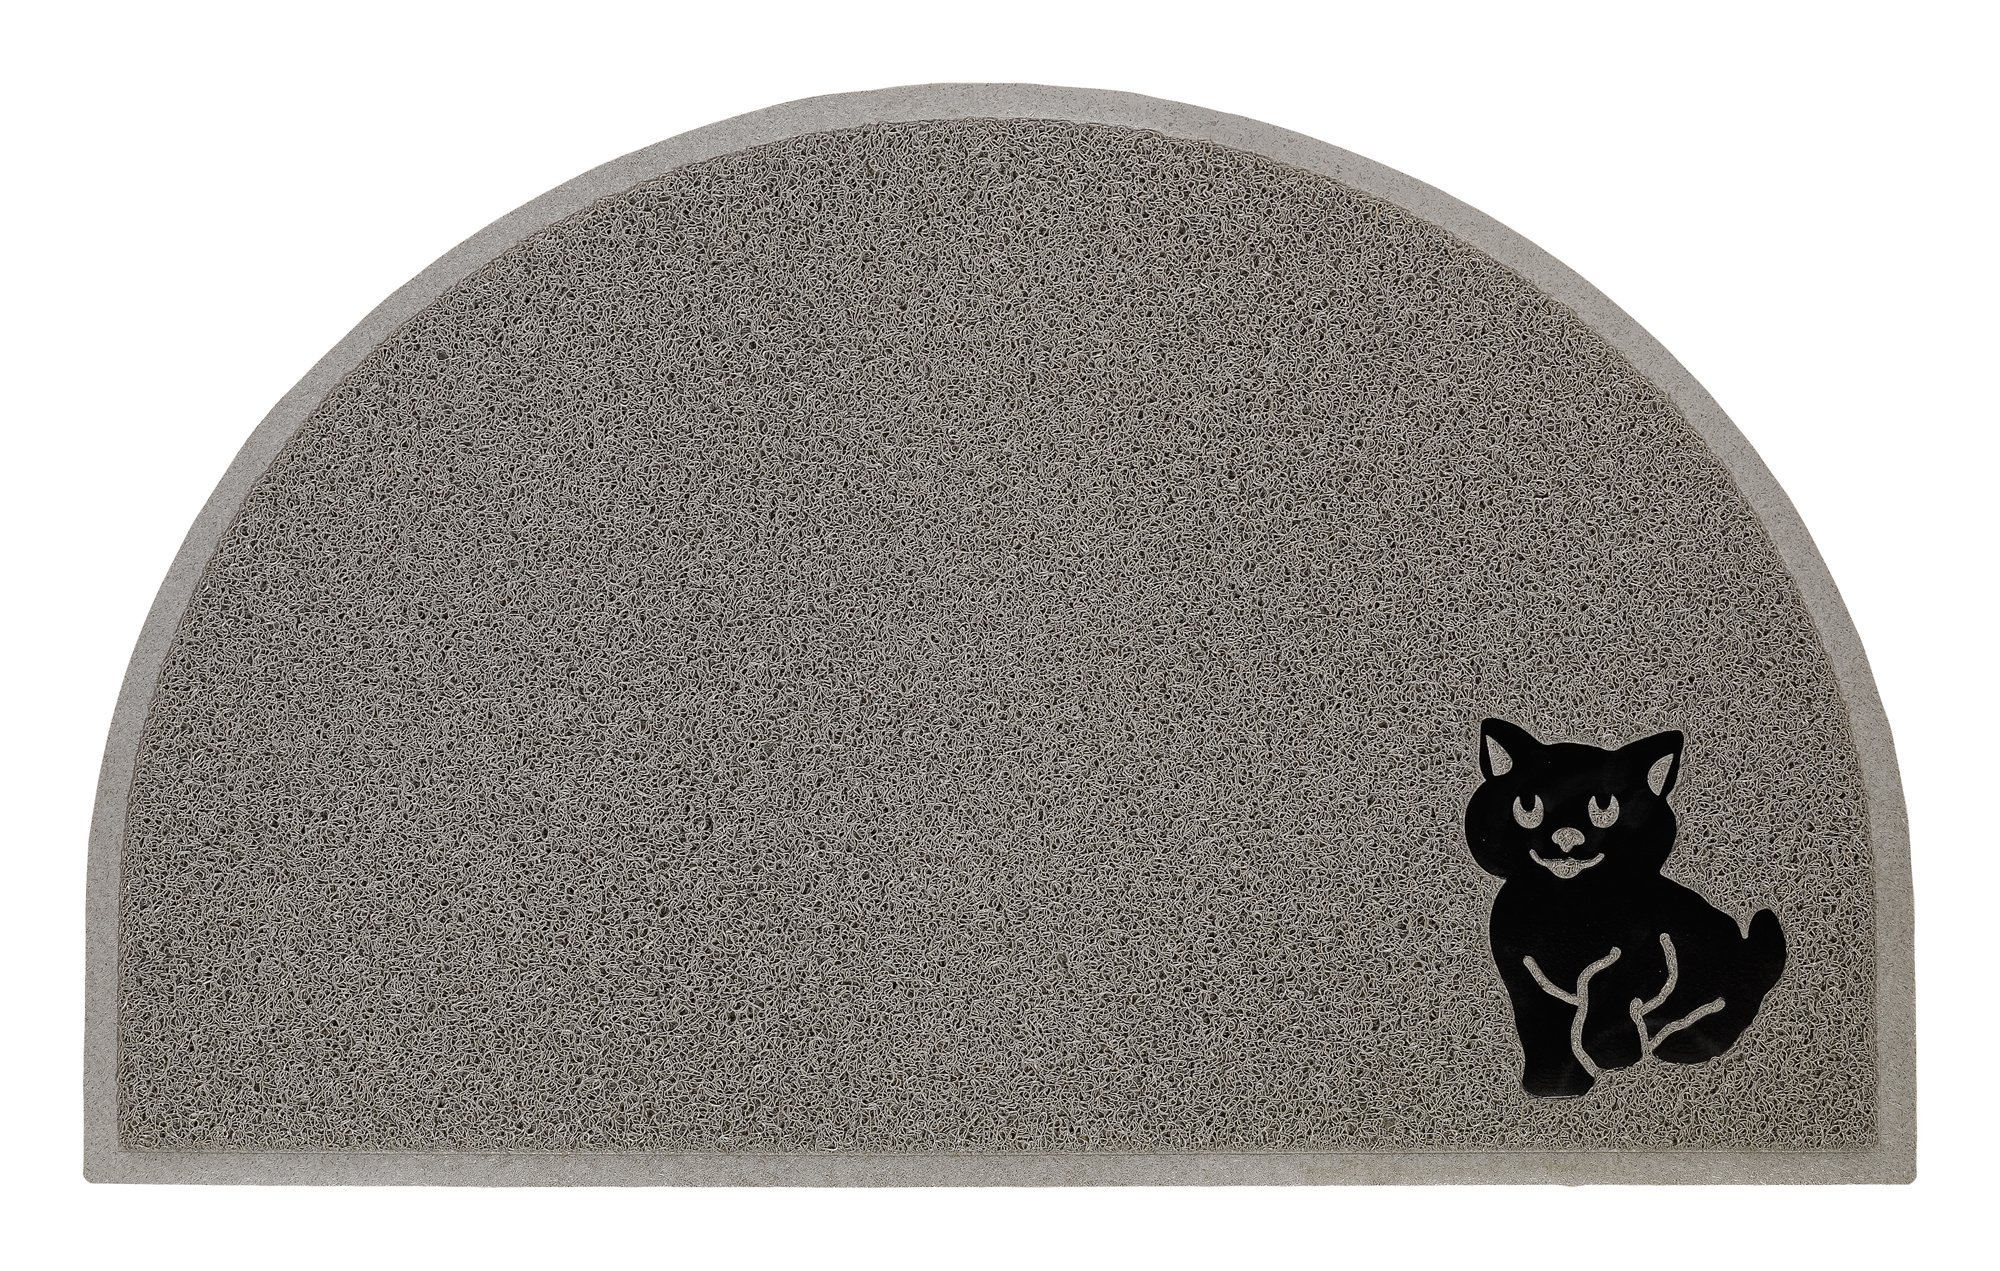 Nature's Cat Litter Mat BPA Free Extra Large Half Moon Design - Grey by Nature's Secret Remedy